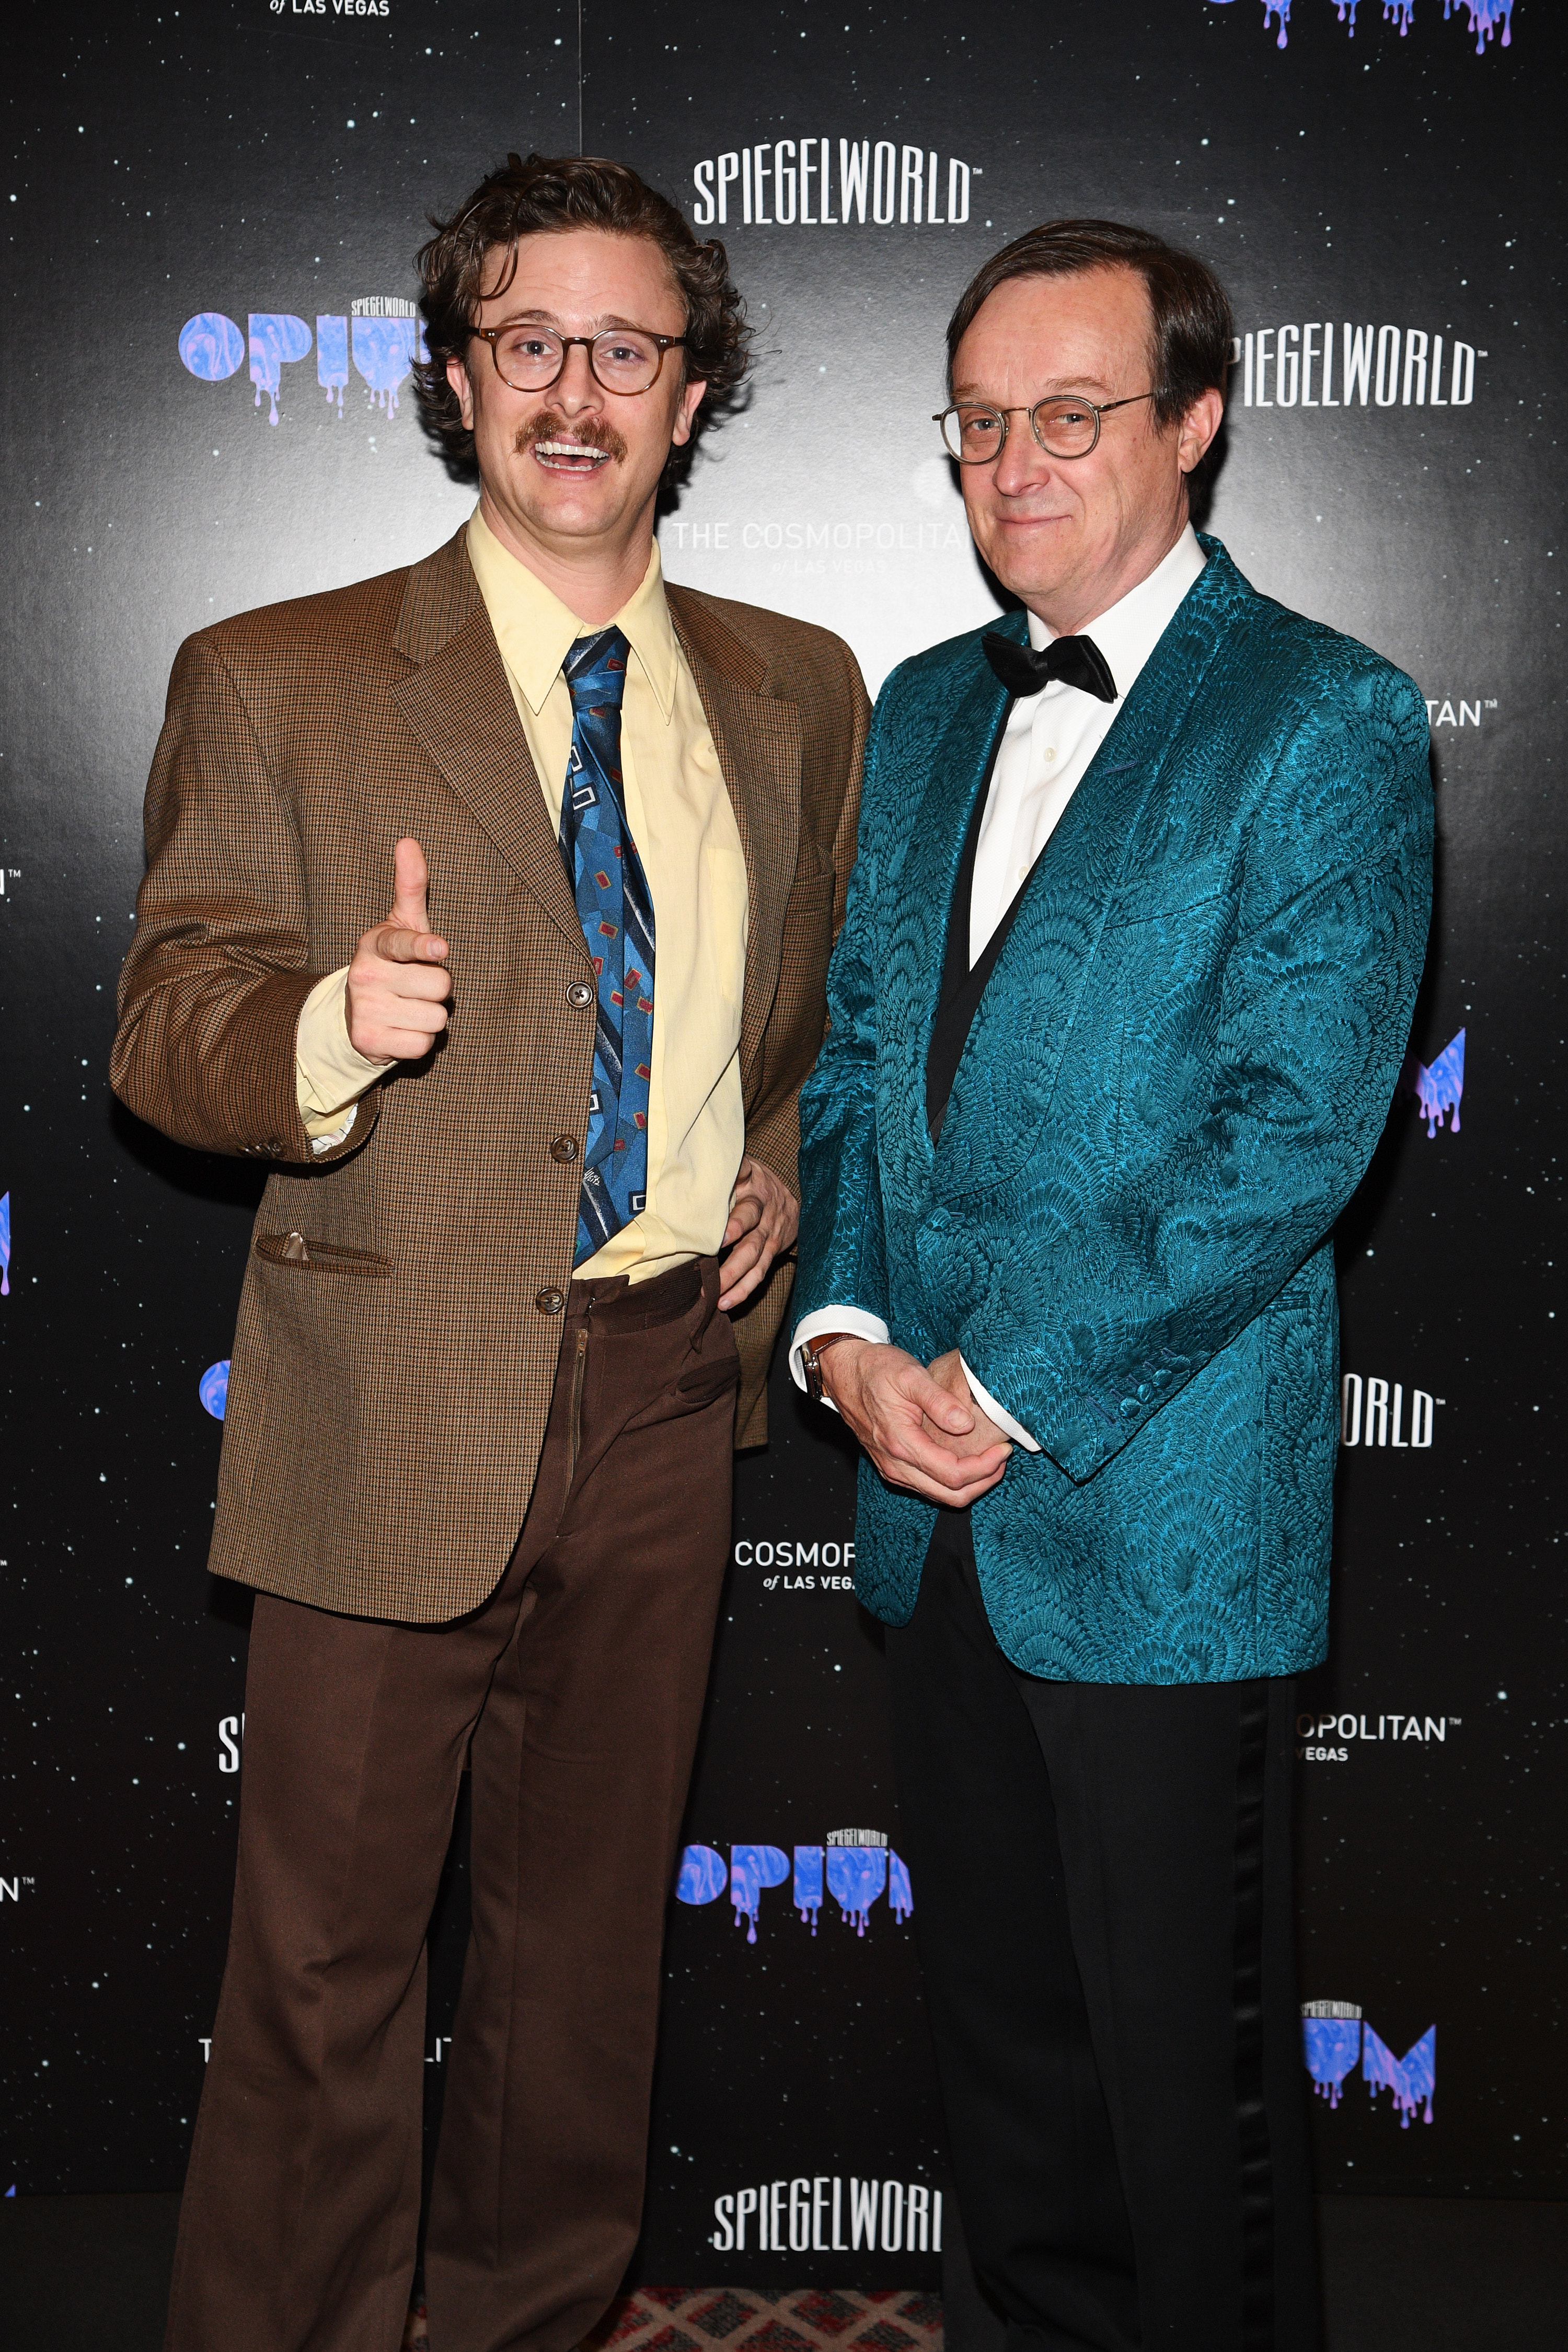 OPIUM Show Promoter Harry M. Howie and Spiegelworld Impresario Ross Mollison_credit Al Powers for Spiegelworld